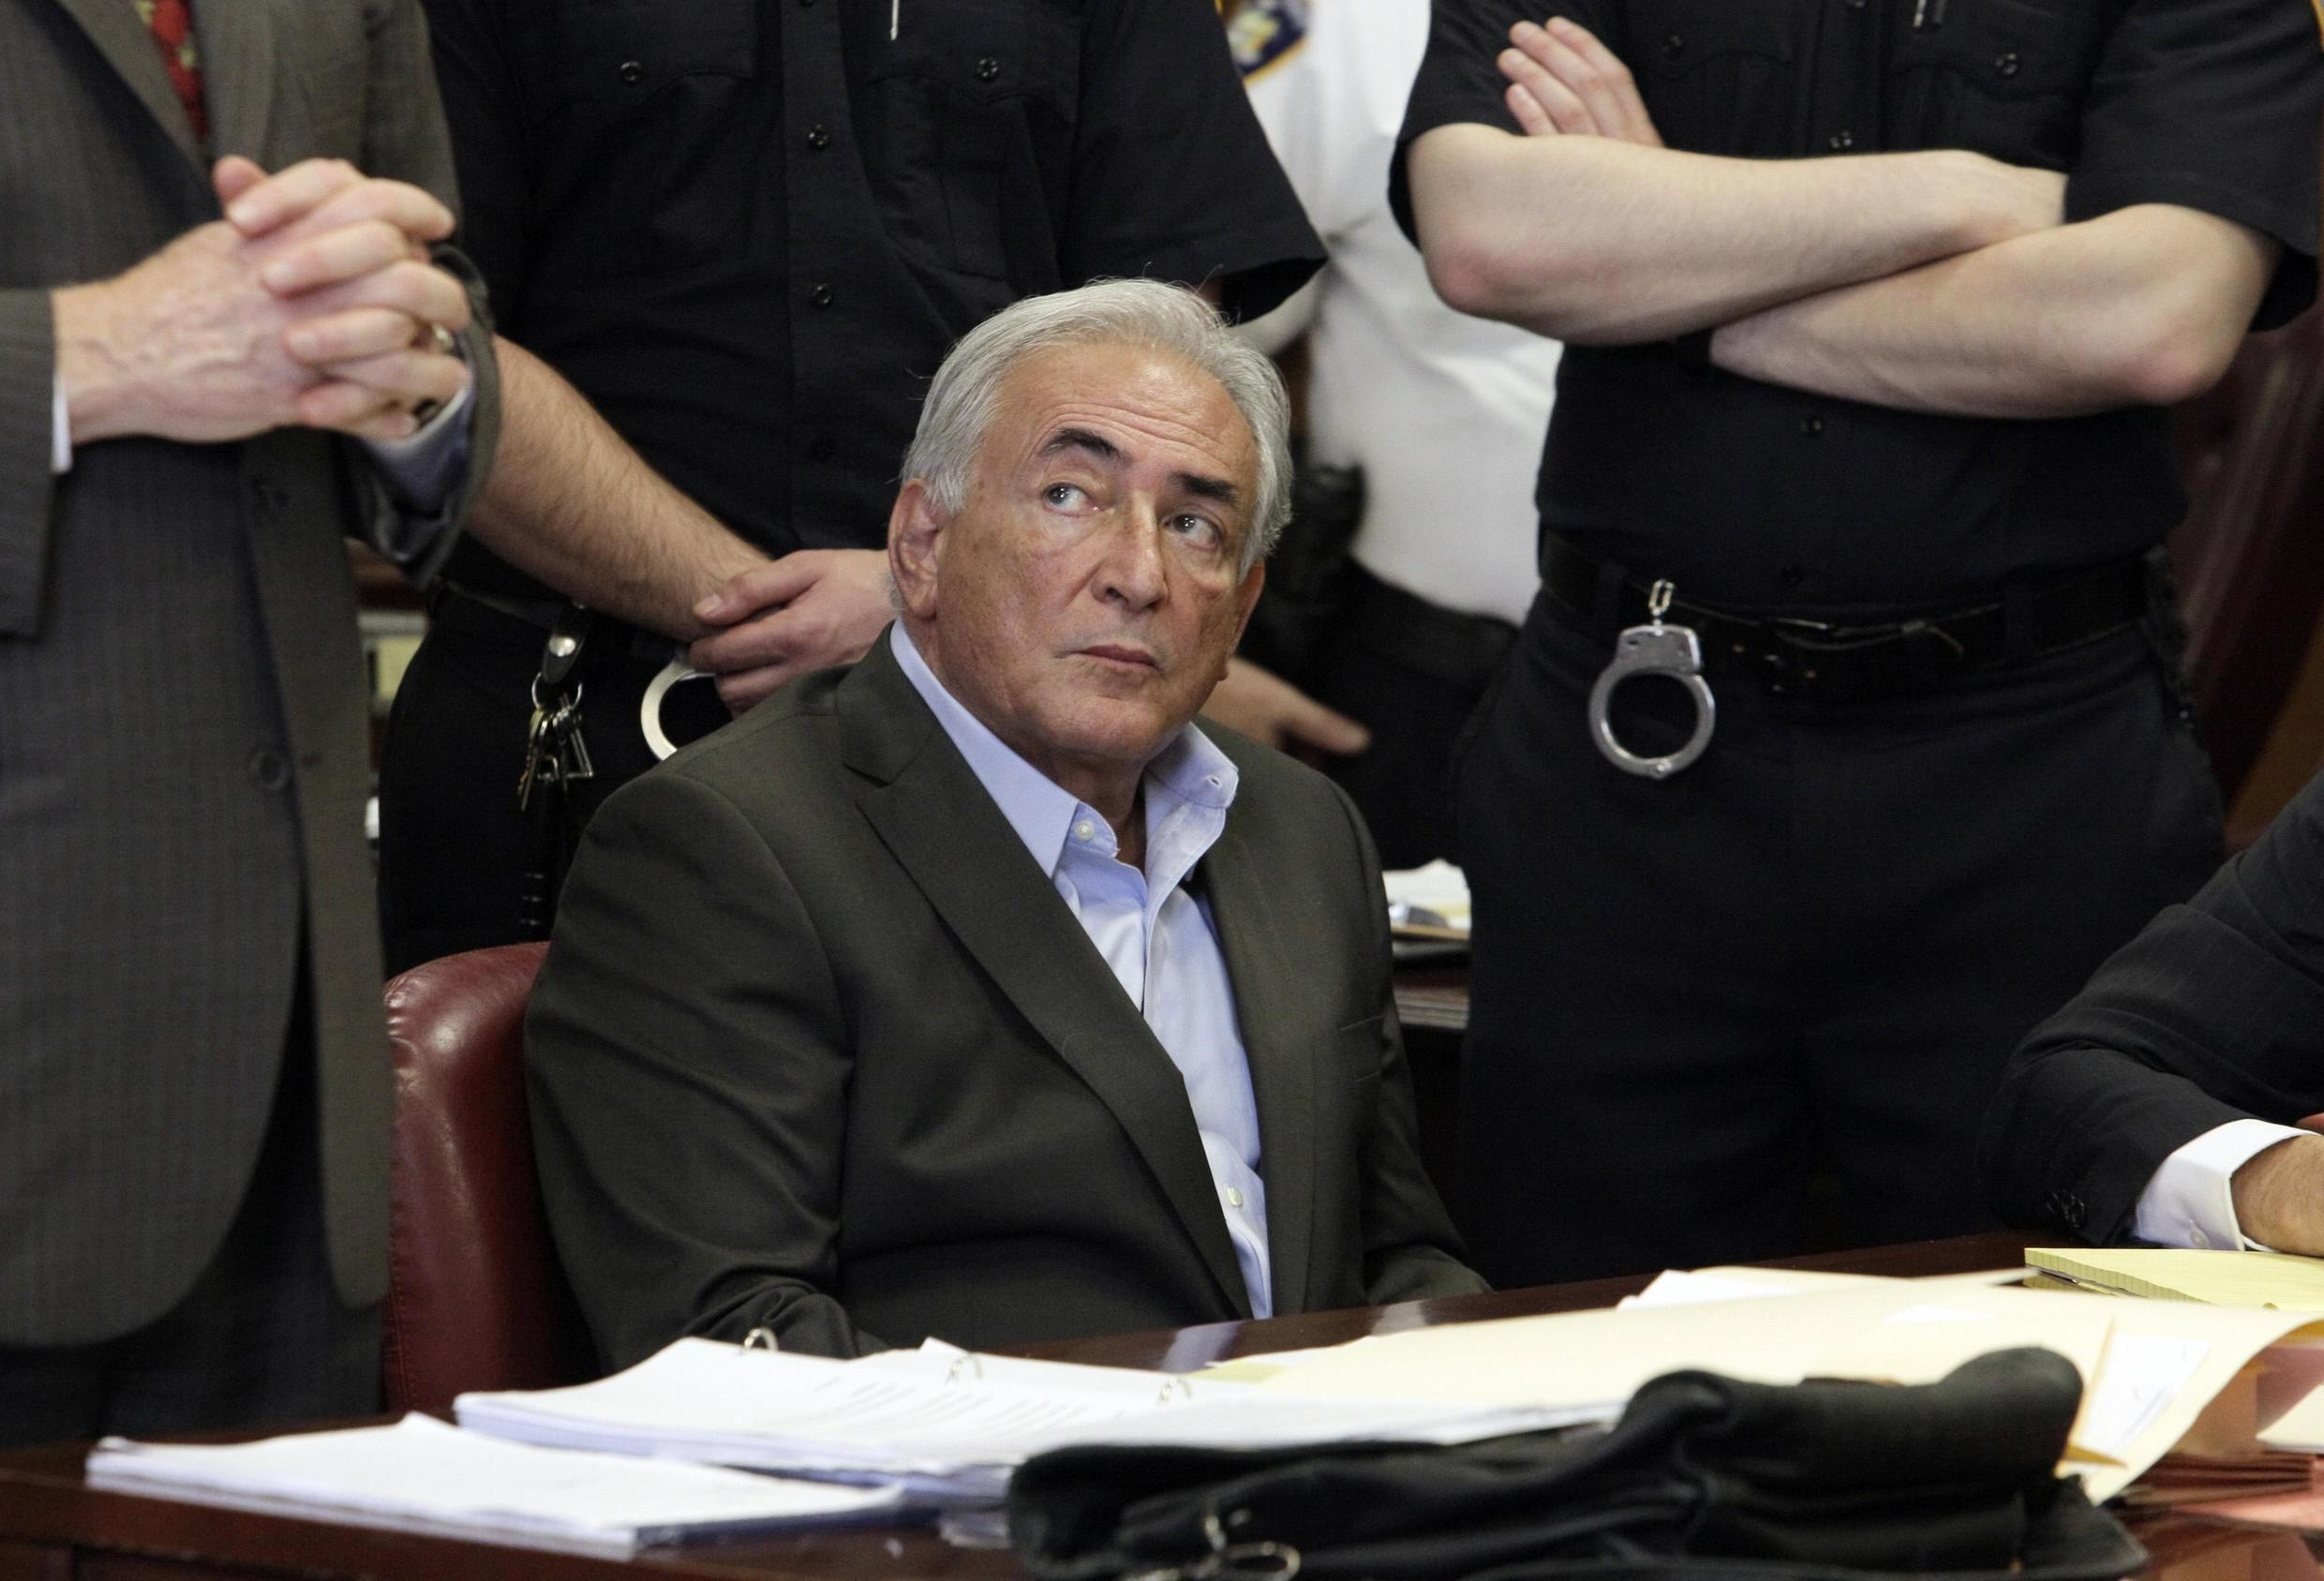 Dominique Strauss-Kahn awaiting bail decision at New York criminal court, 19 May, 2011